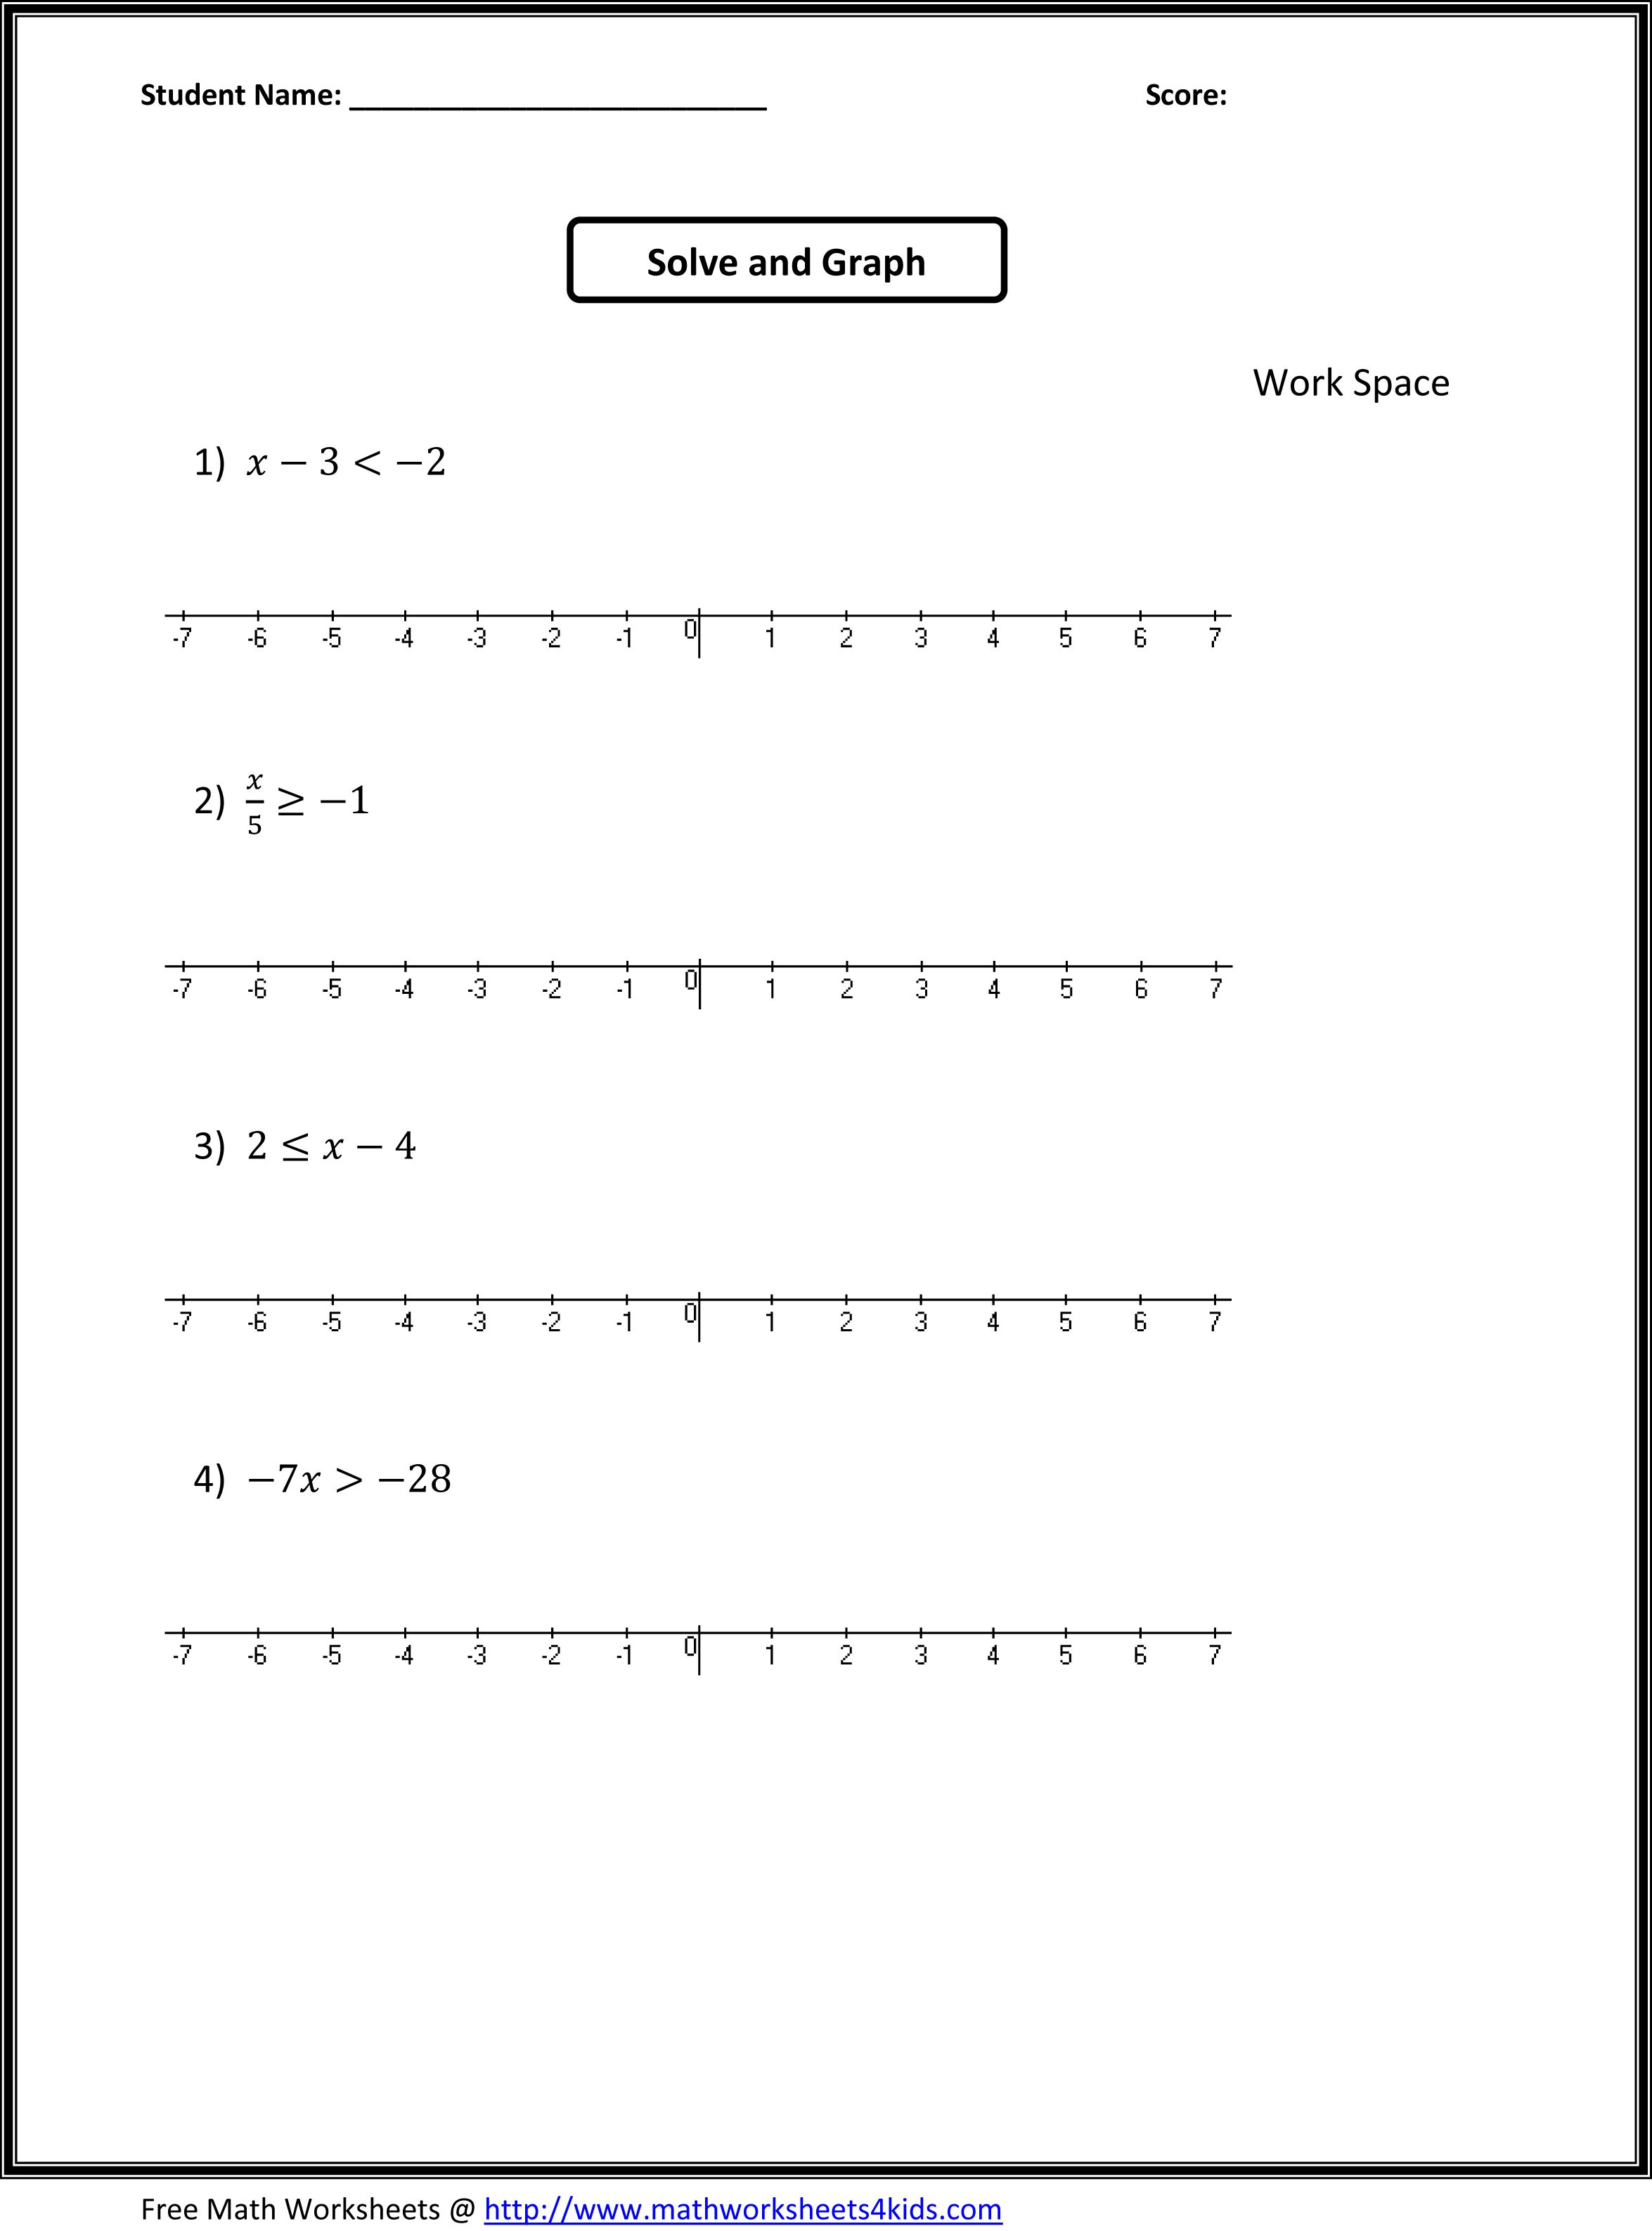 Worksheets Math 7th Grade Worksheets 7th grade math worksheets value absolute algebra worksheets